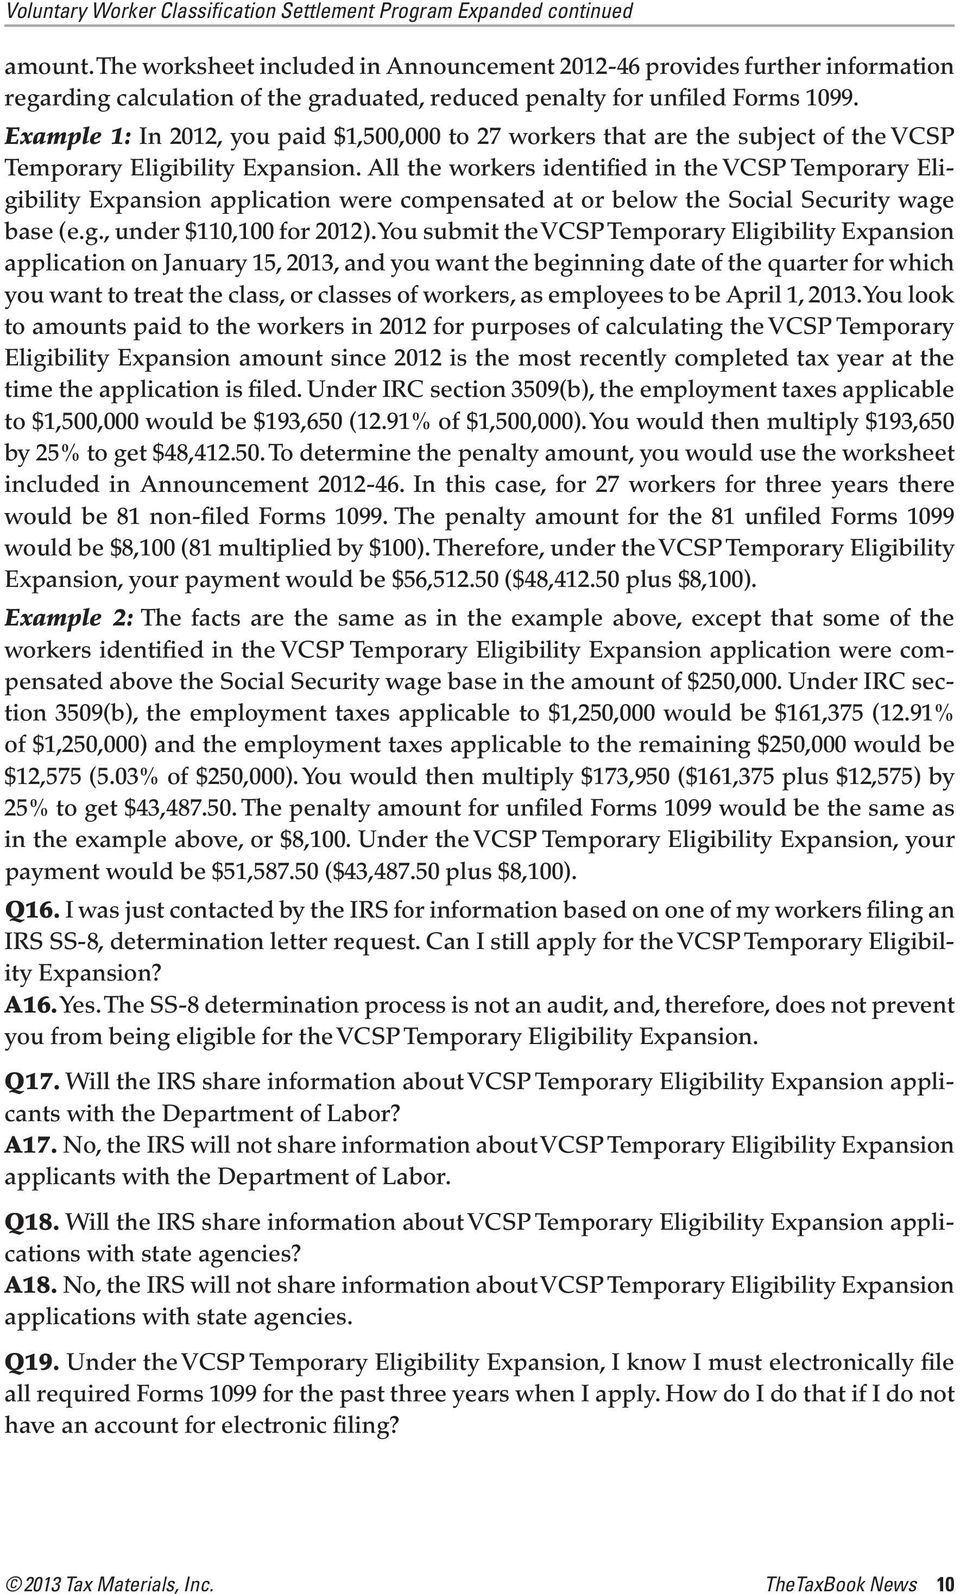 All the workers identified in the VCSP Temporary Eligibility Expansion application were compensated at or below the Social Security wage base (e.g., under $110,100 for 2012).